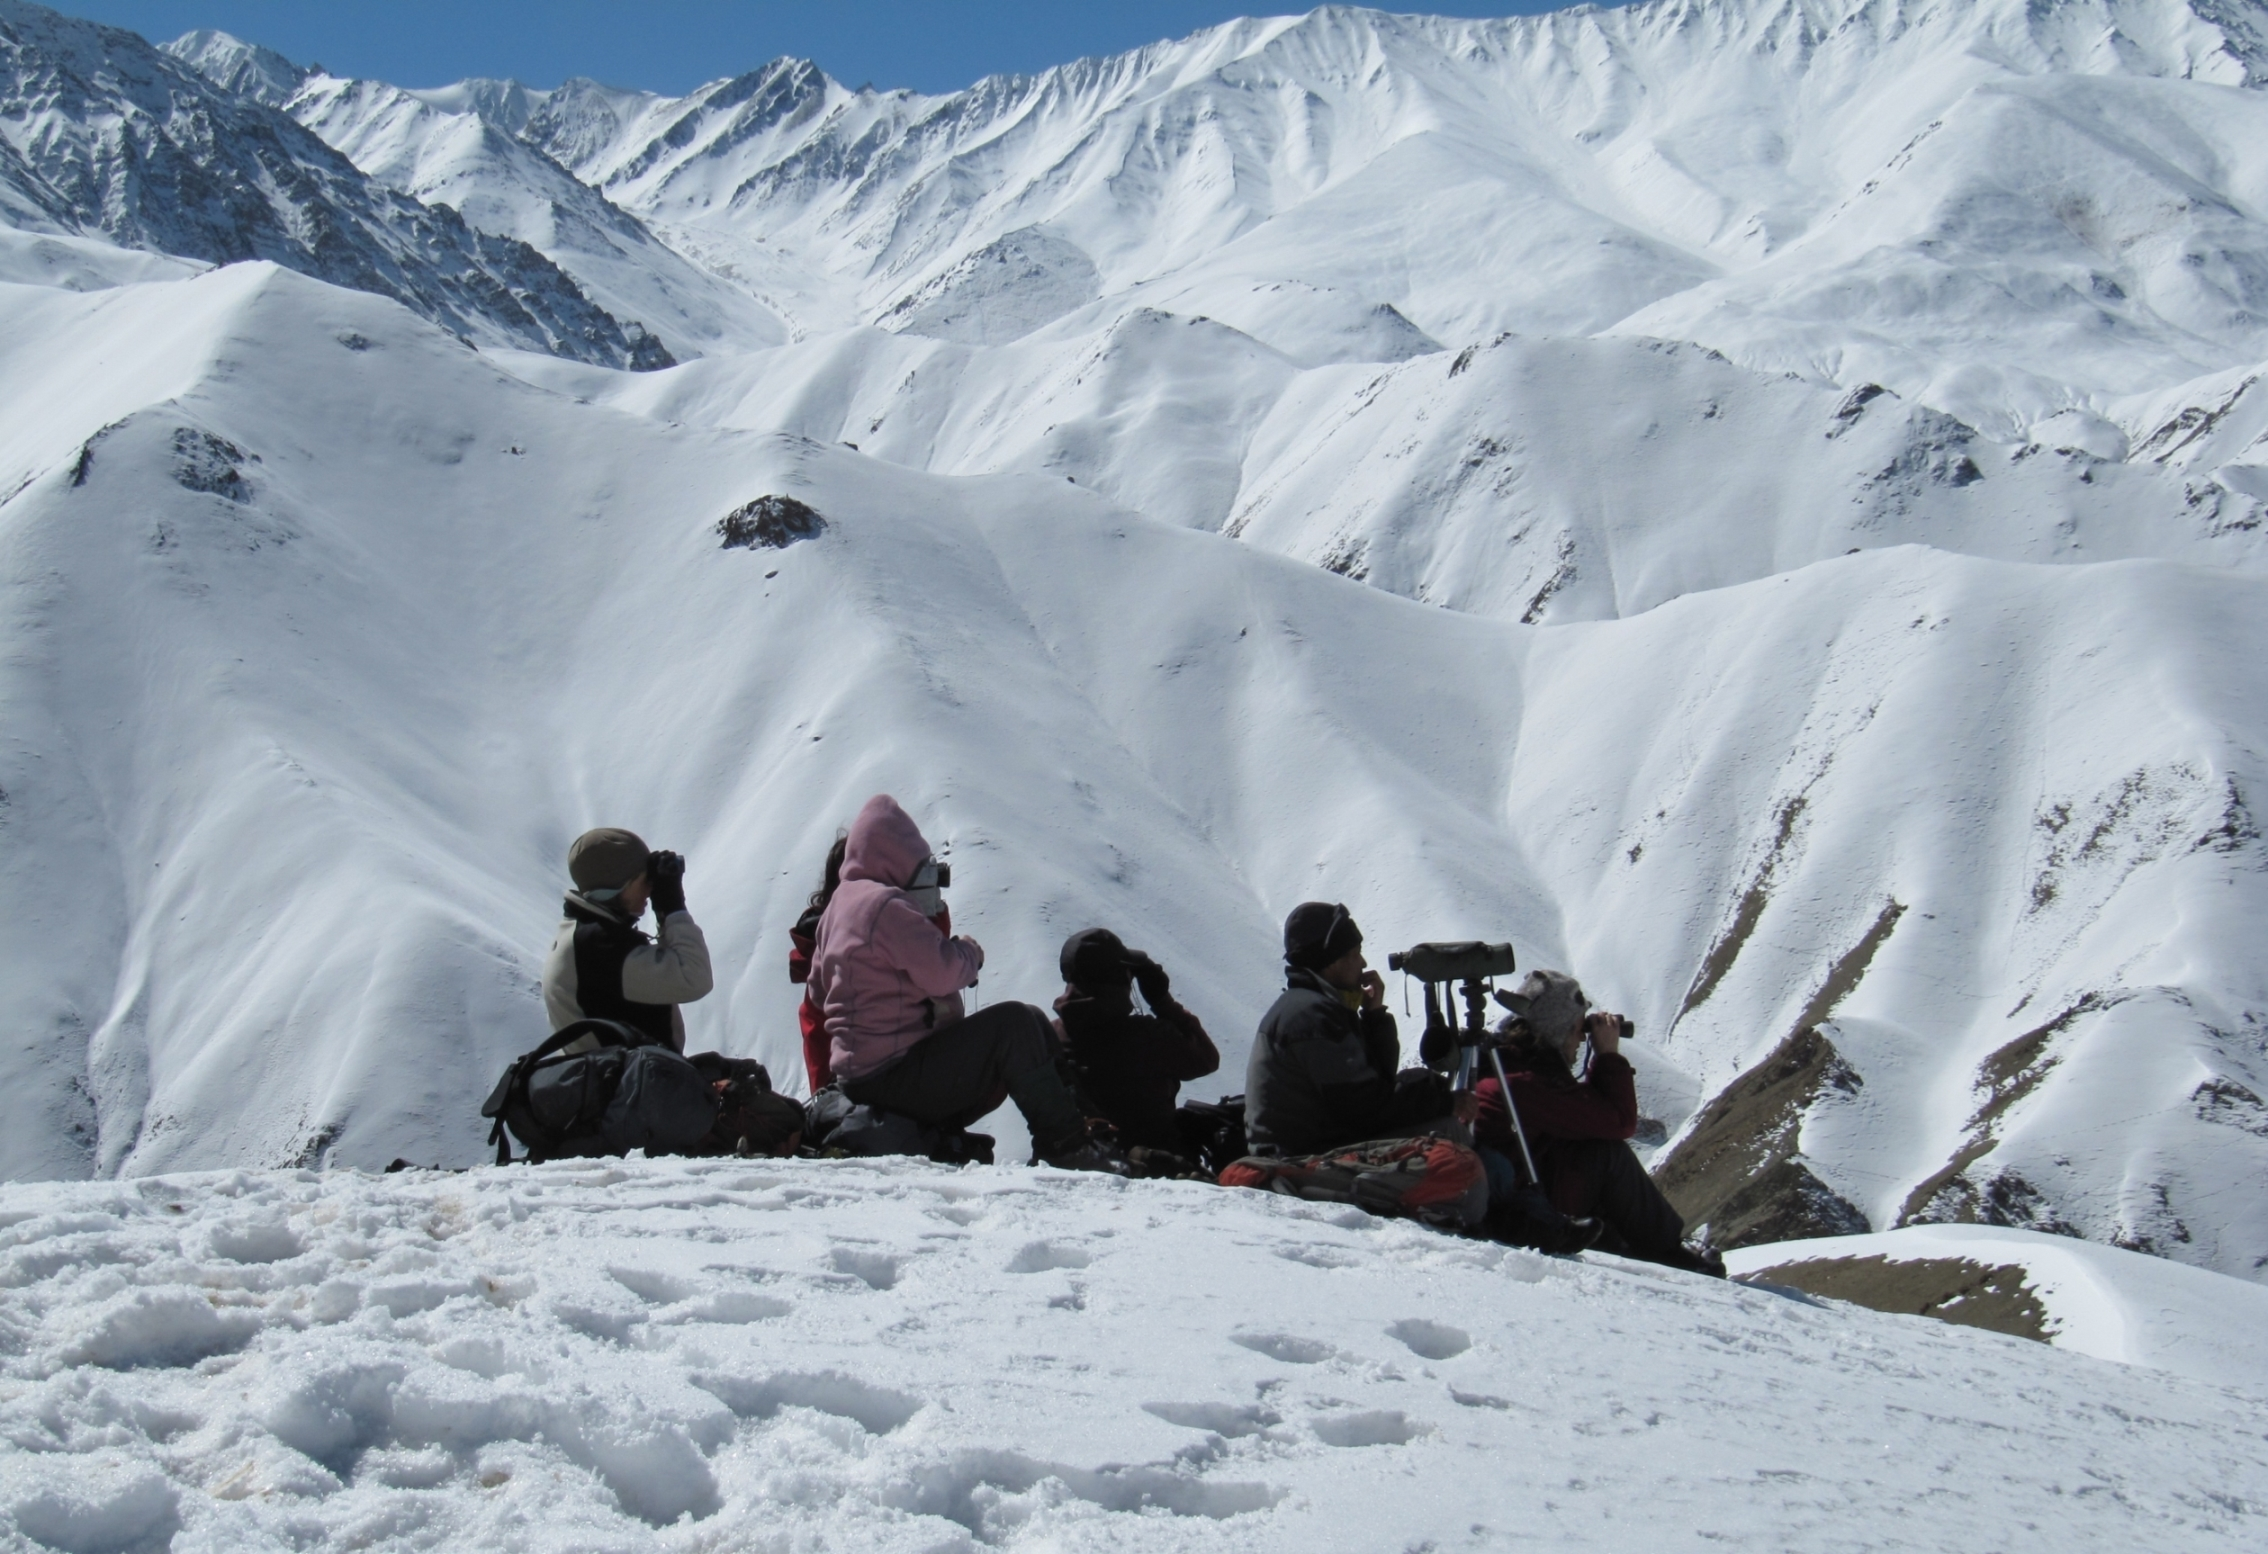 Exodus group scouring mountains for Snow leopards in Ladkh